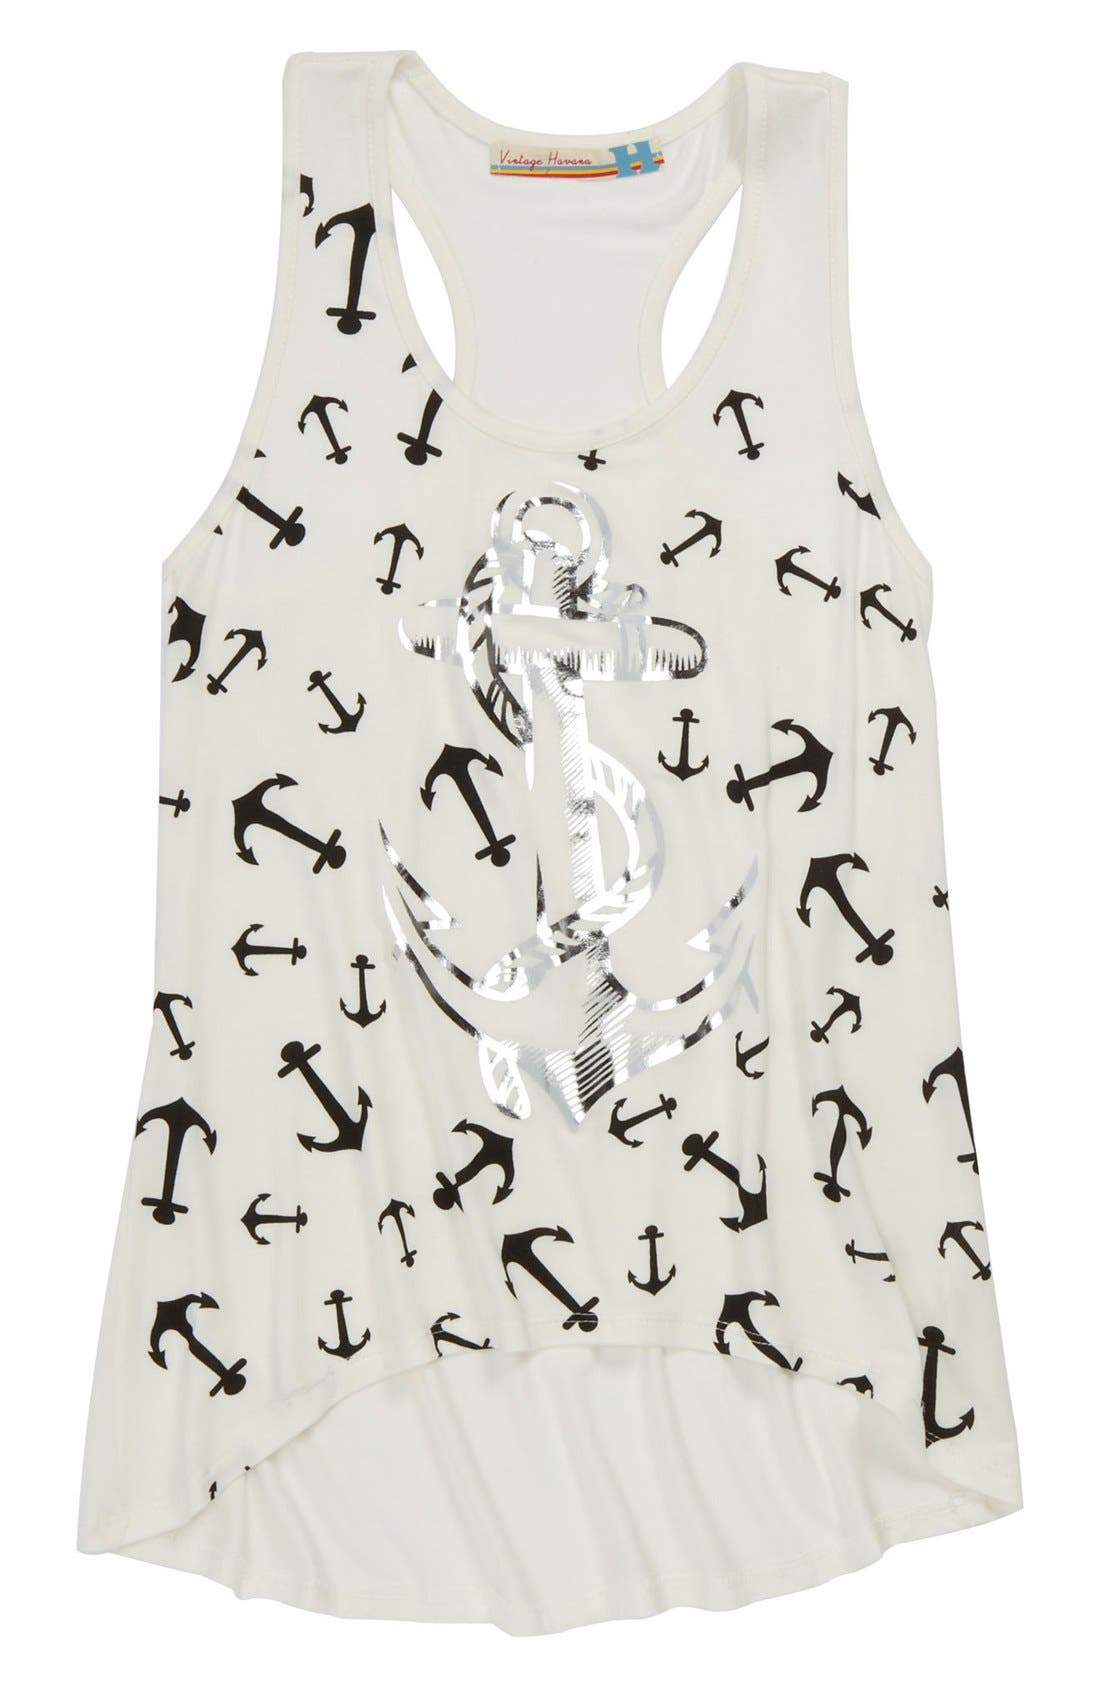 Alternate Image 1 Selected - Vintage Havana Foil Anchor Tank Top (Big Girls)